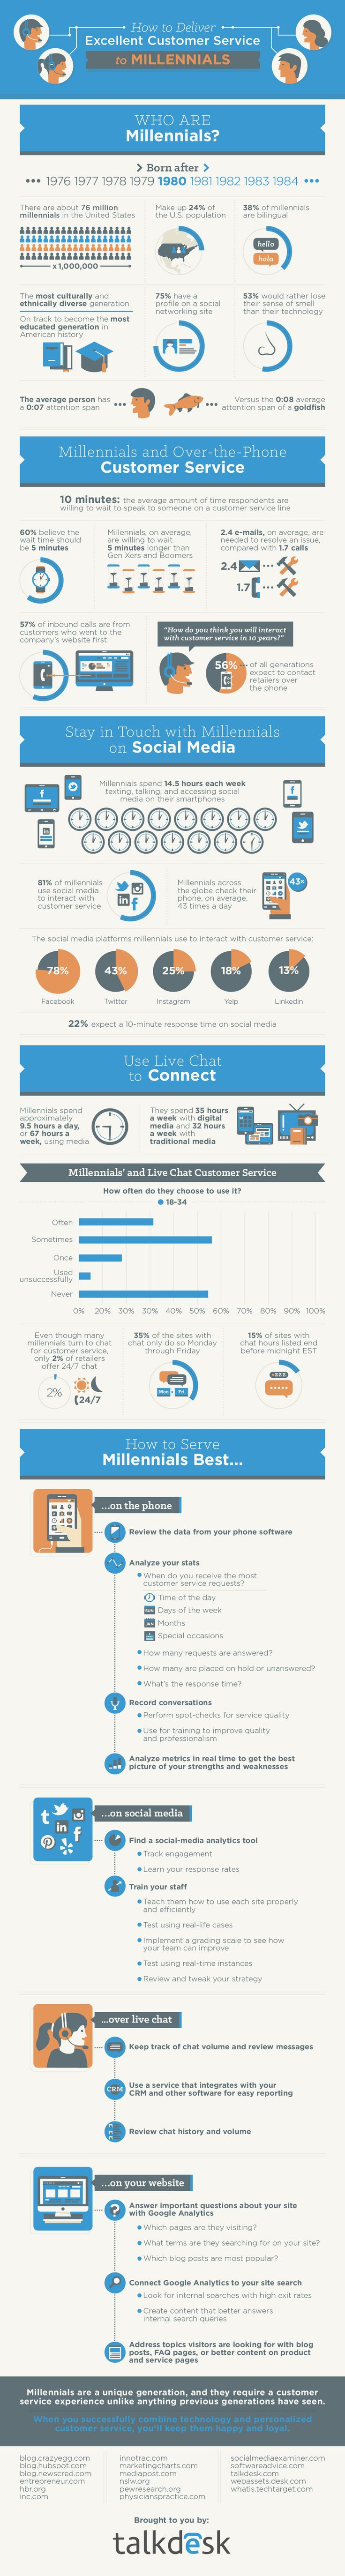 How to Deliver Excellent Customer Service to Millennials #Infographic ~ Visualistan